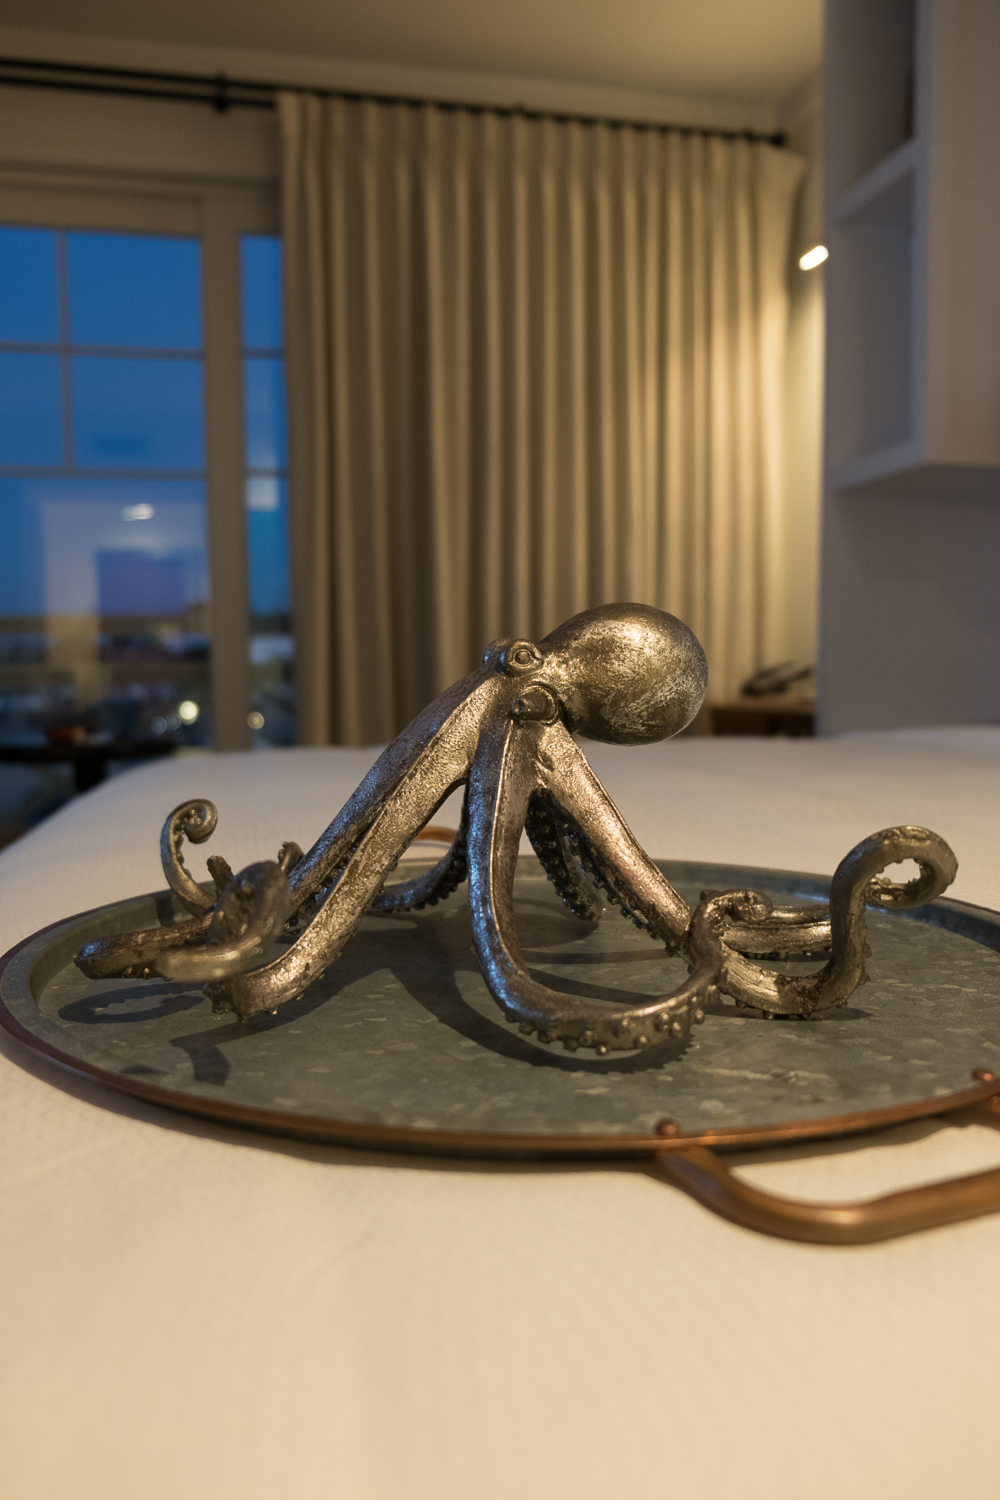 Lido House- octopus statue in room